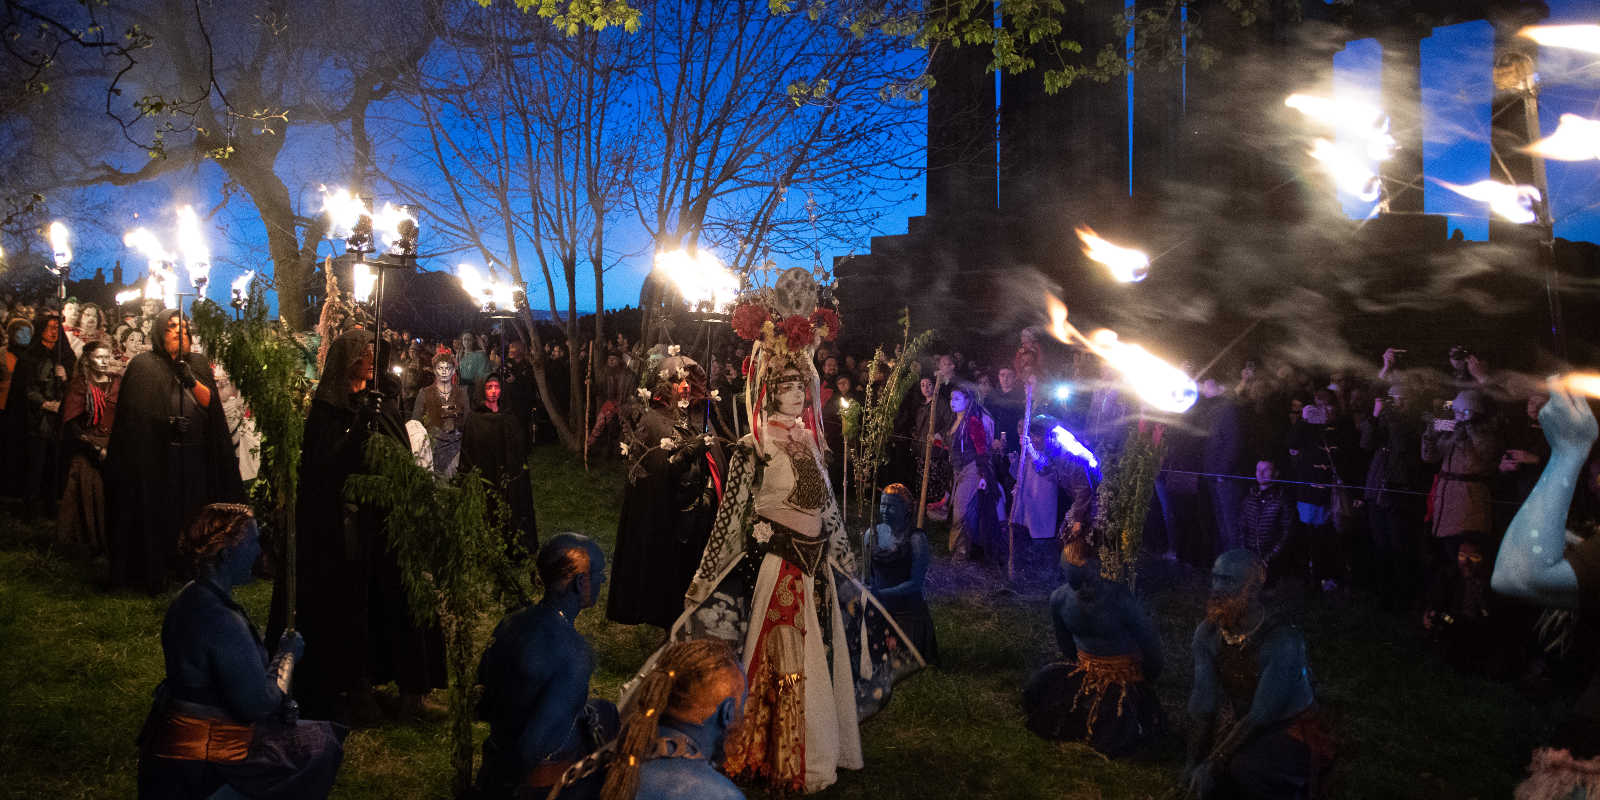 May Queen, Blue Men and other characters from Beltane Fire Festival